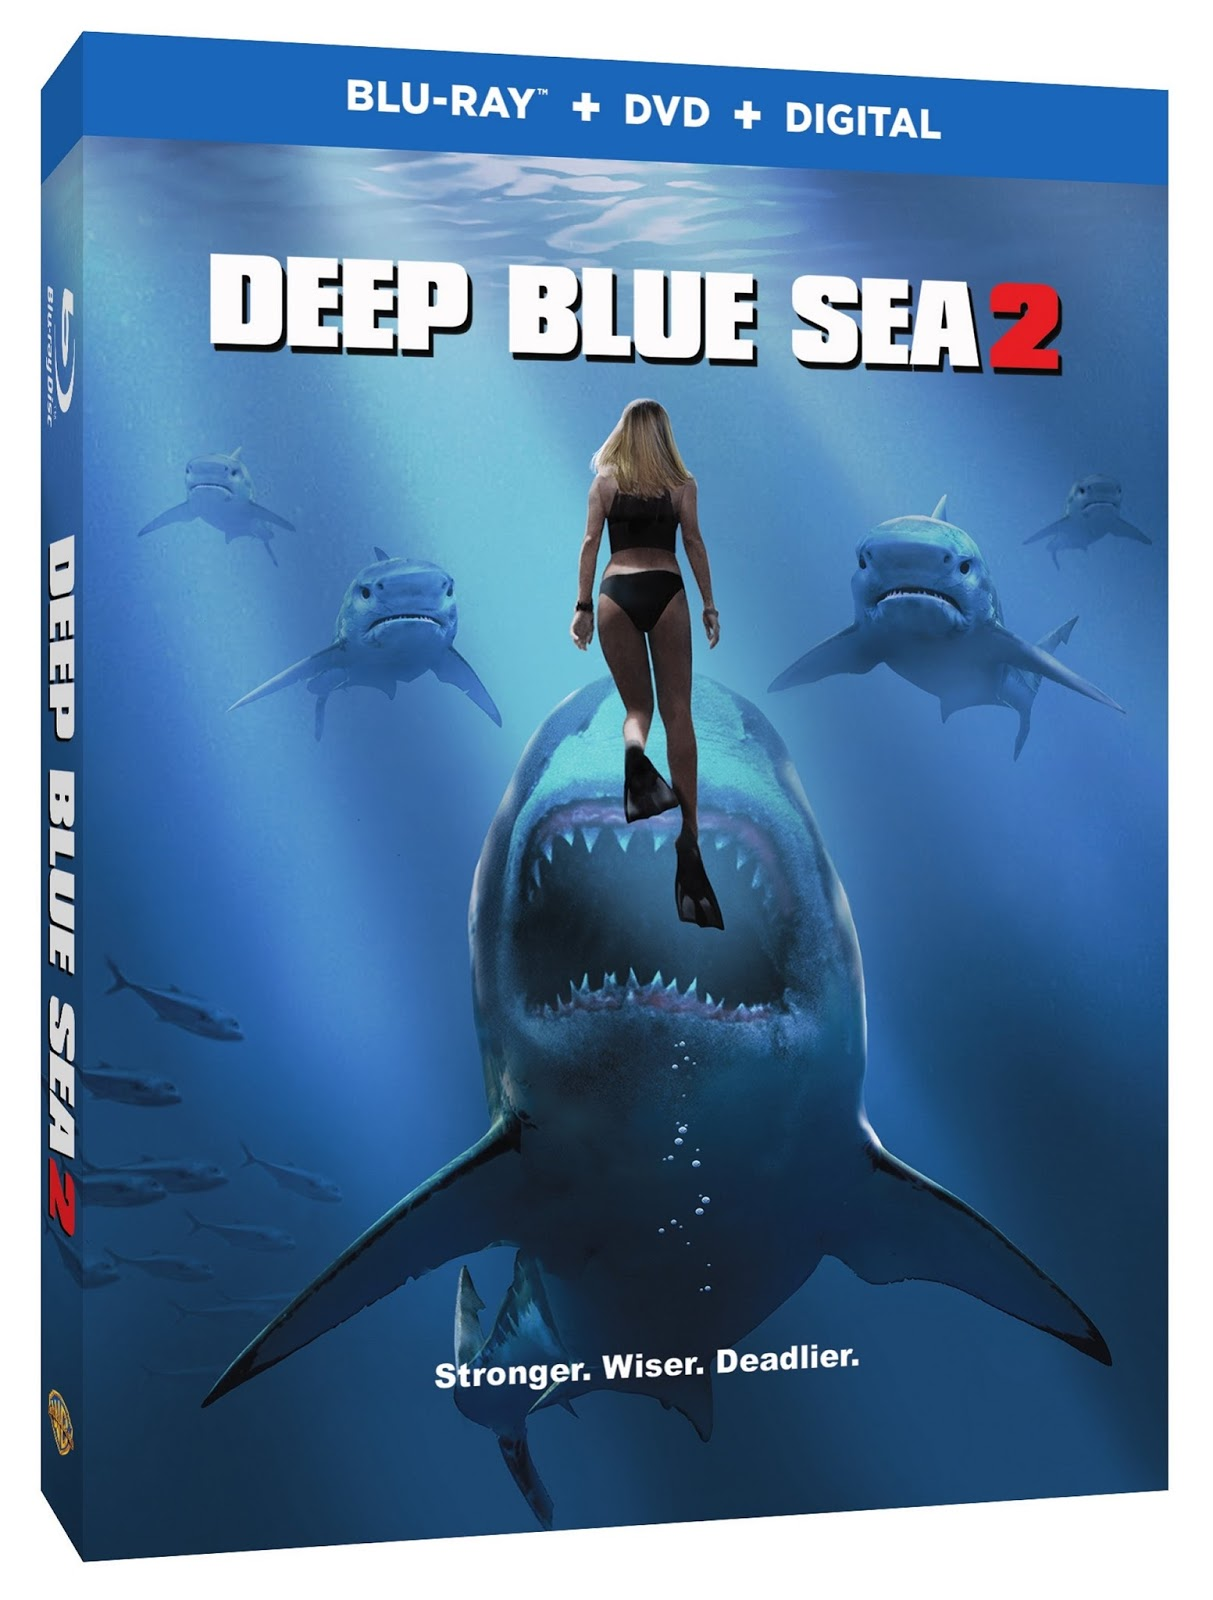 DEEP BLUE SEA 2: See the New Clip and Monsterpalooza Images on Eve of  Release